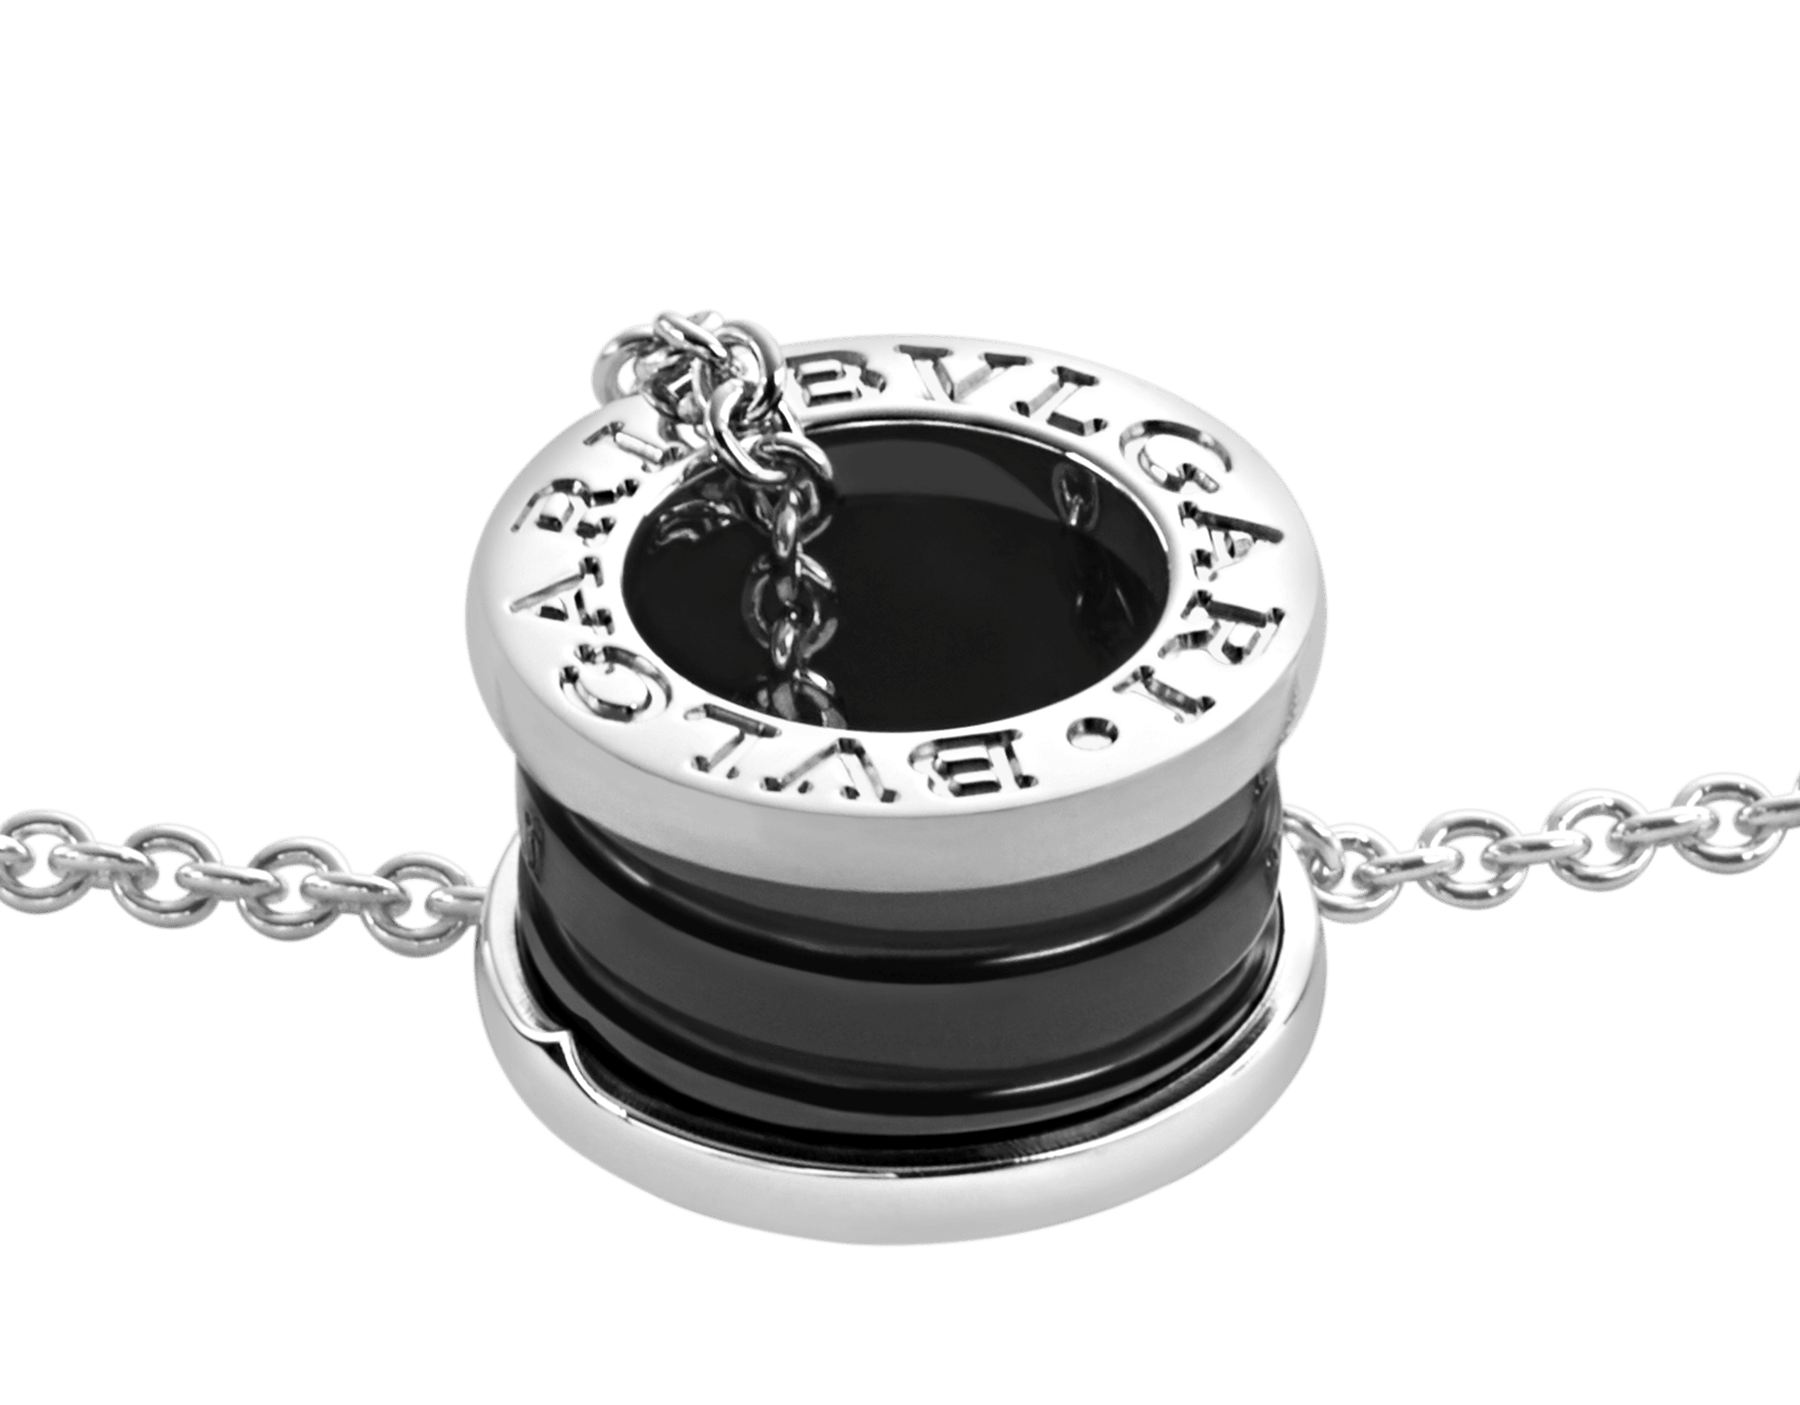 Save the Children necklace with sterling silver and black ceramic pendant, and sterling silver chain 349634 image 3